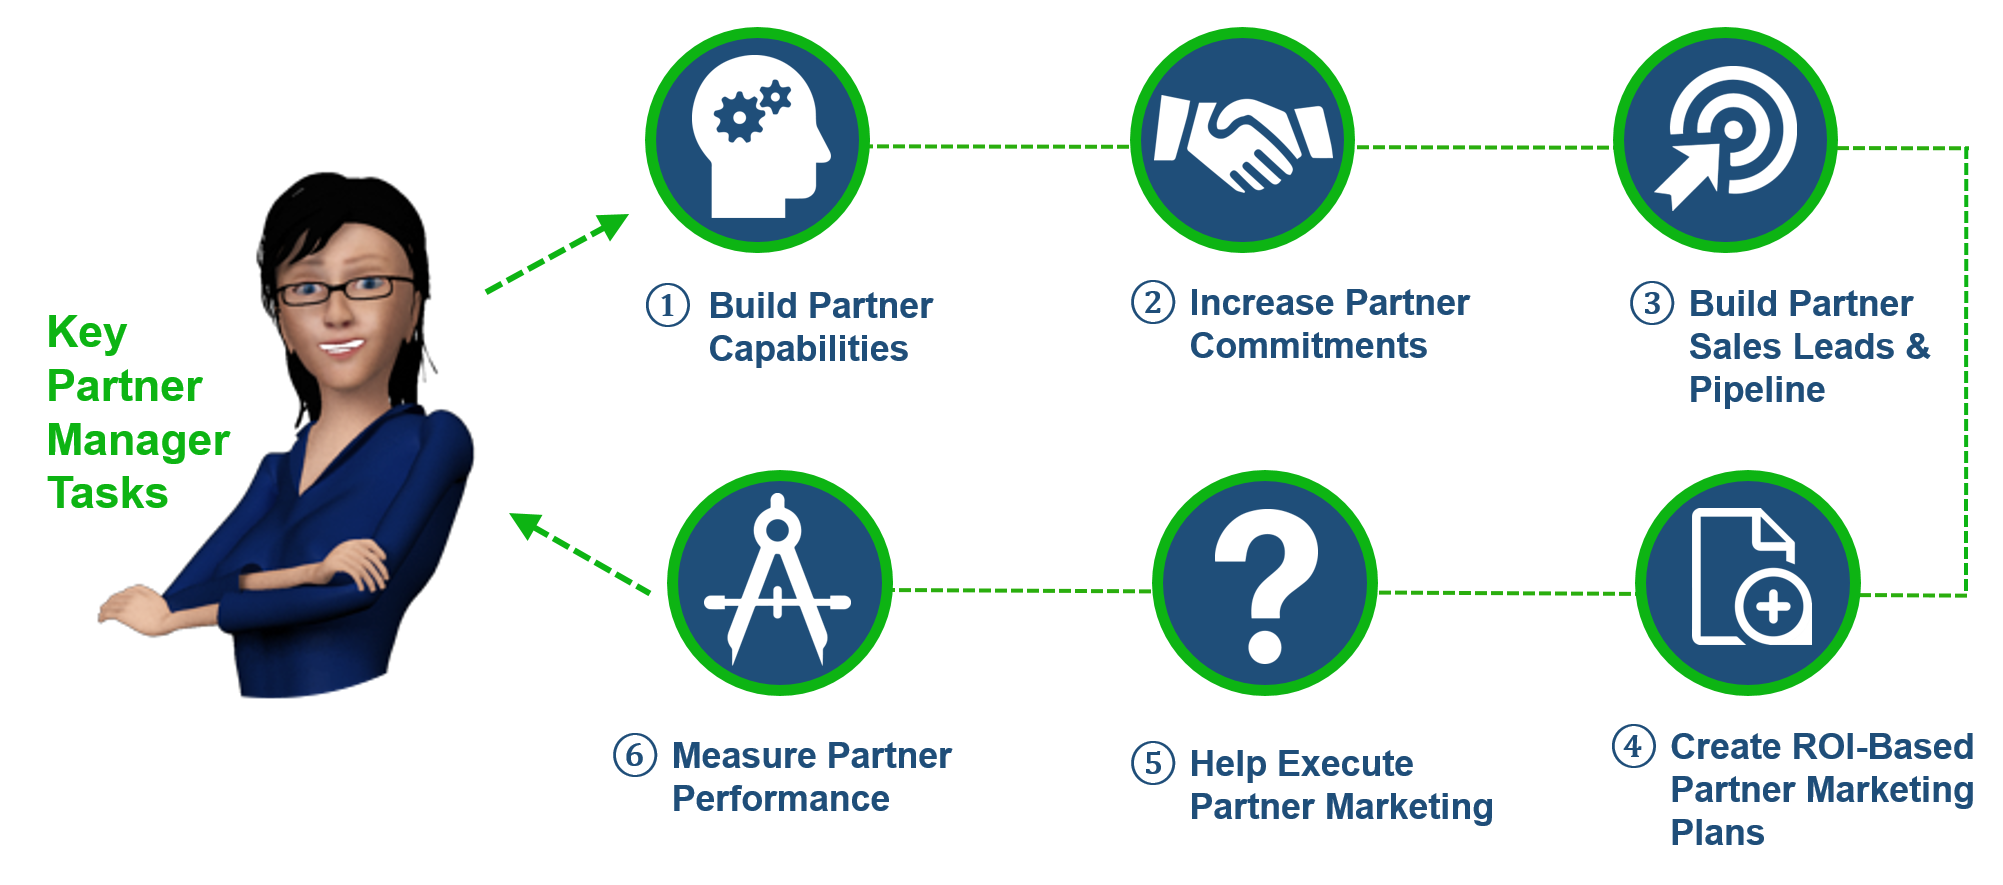 Partner Manager Tasks